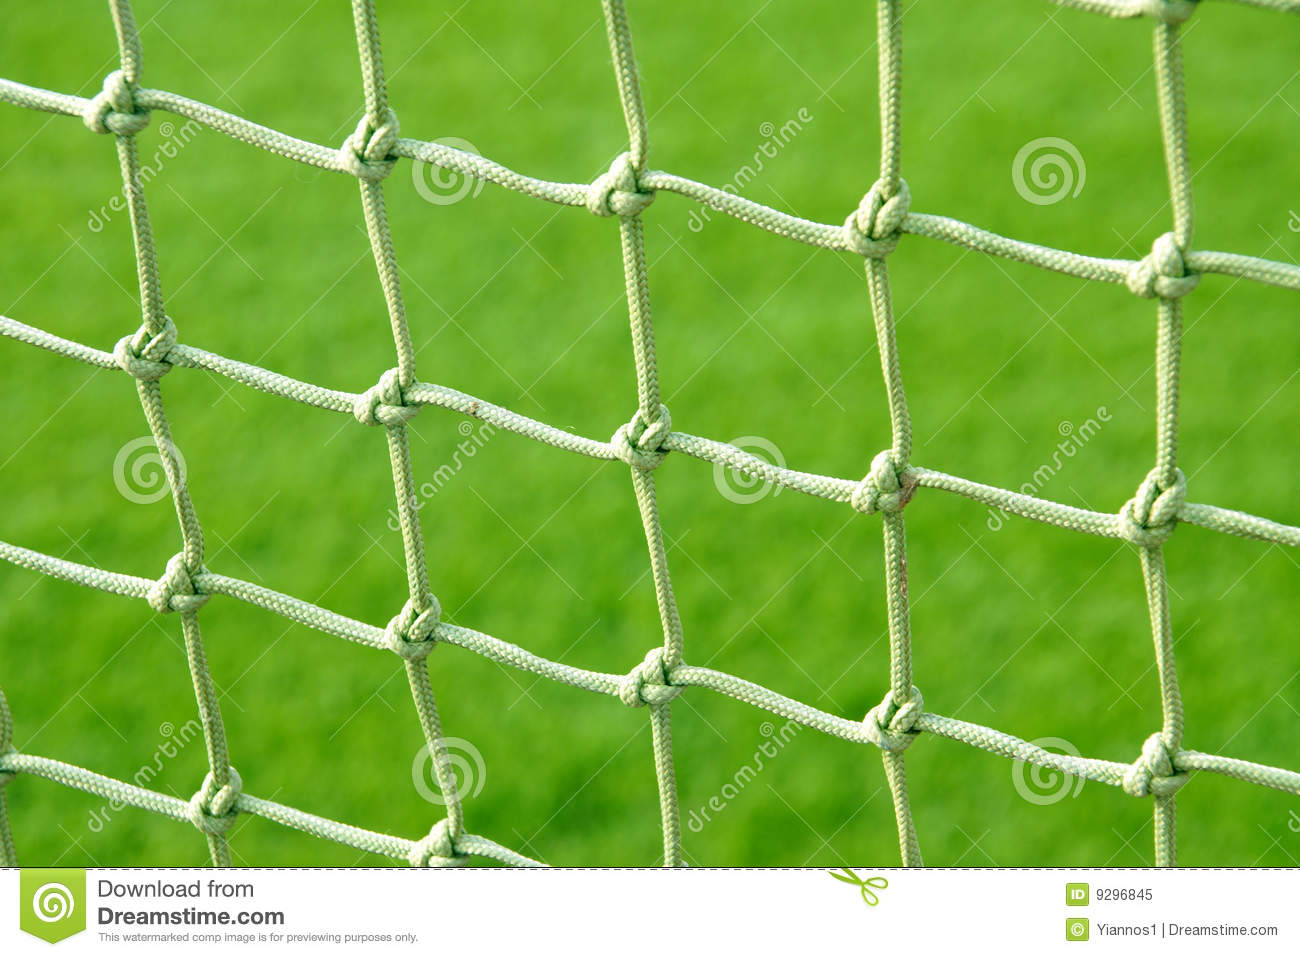 Soccer net stock image. Image of goal, competition, green - 9296845